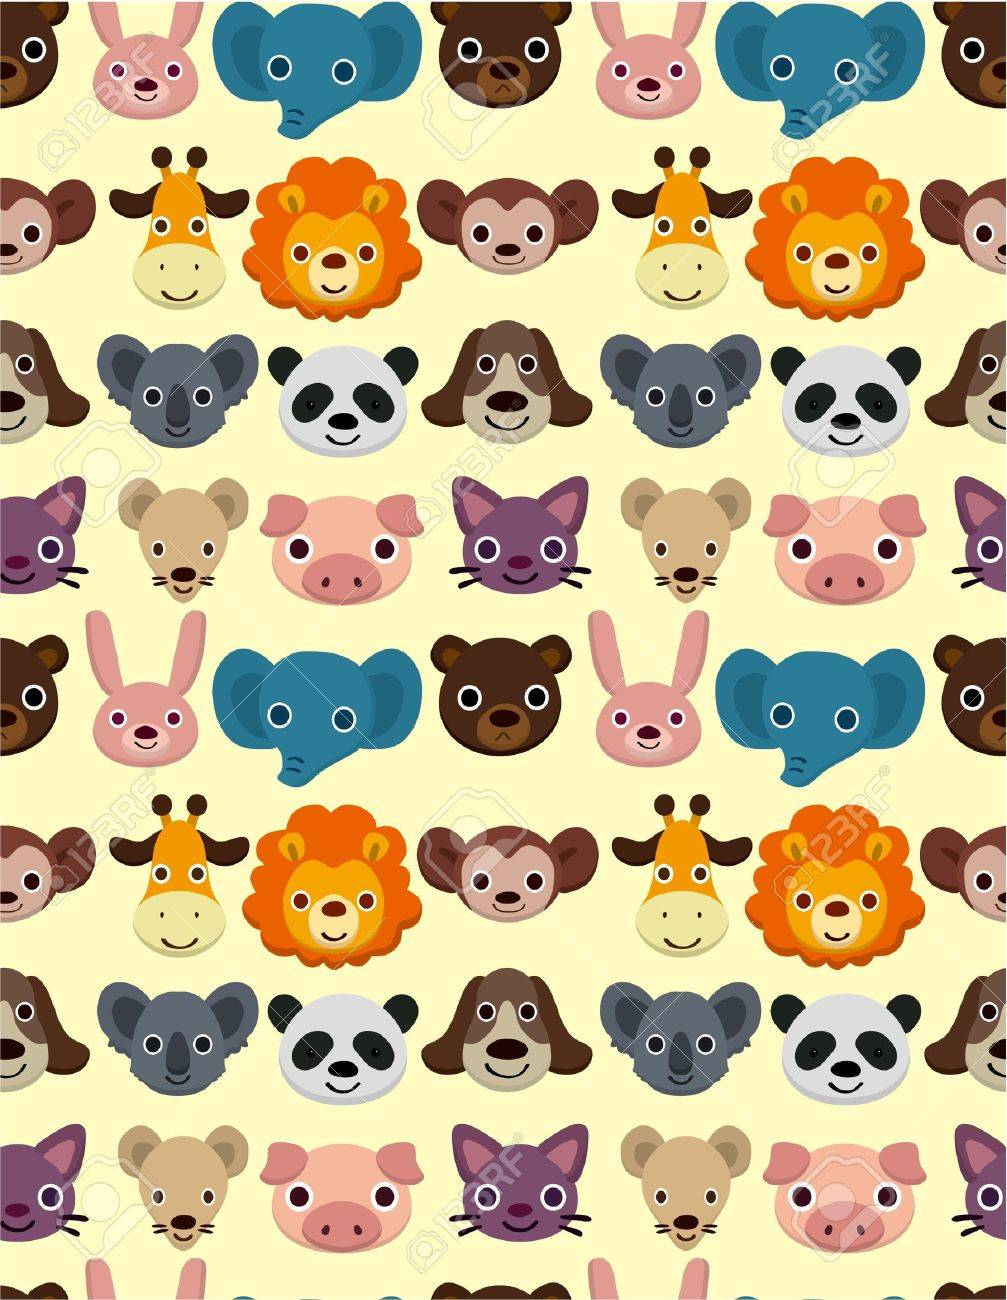 seamless animal face pattern Stock Vector - 9148224